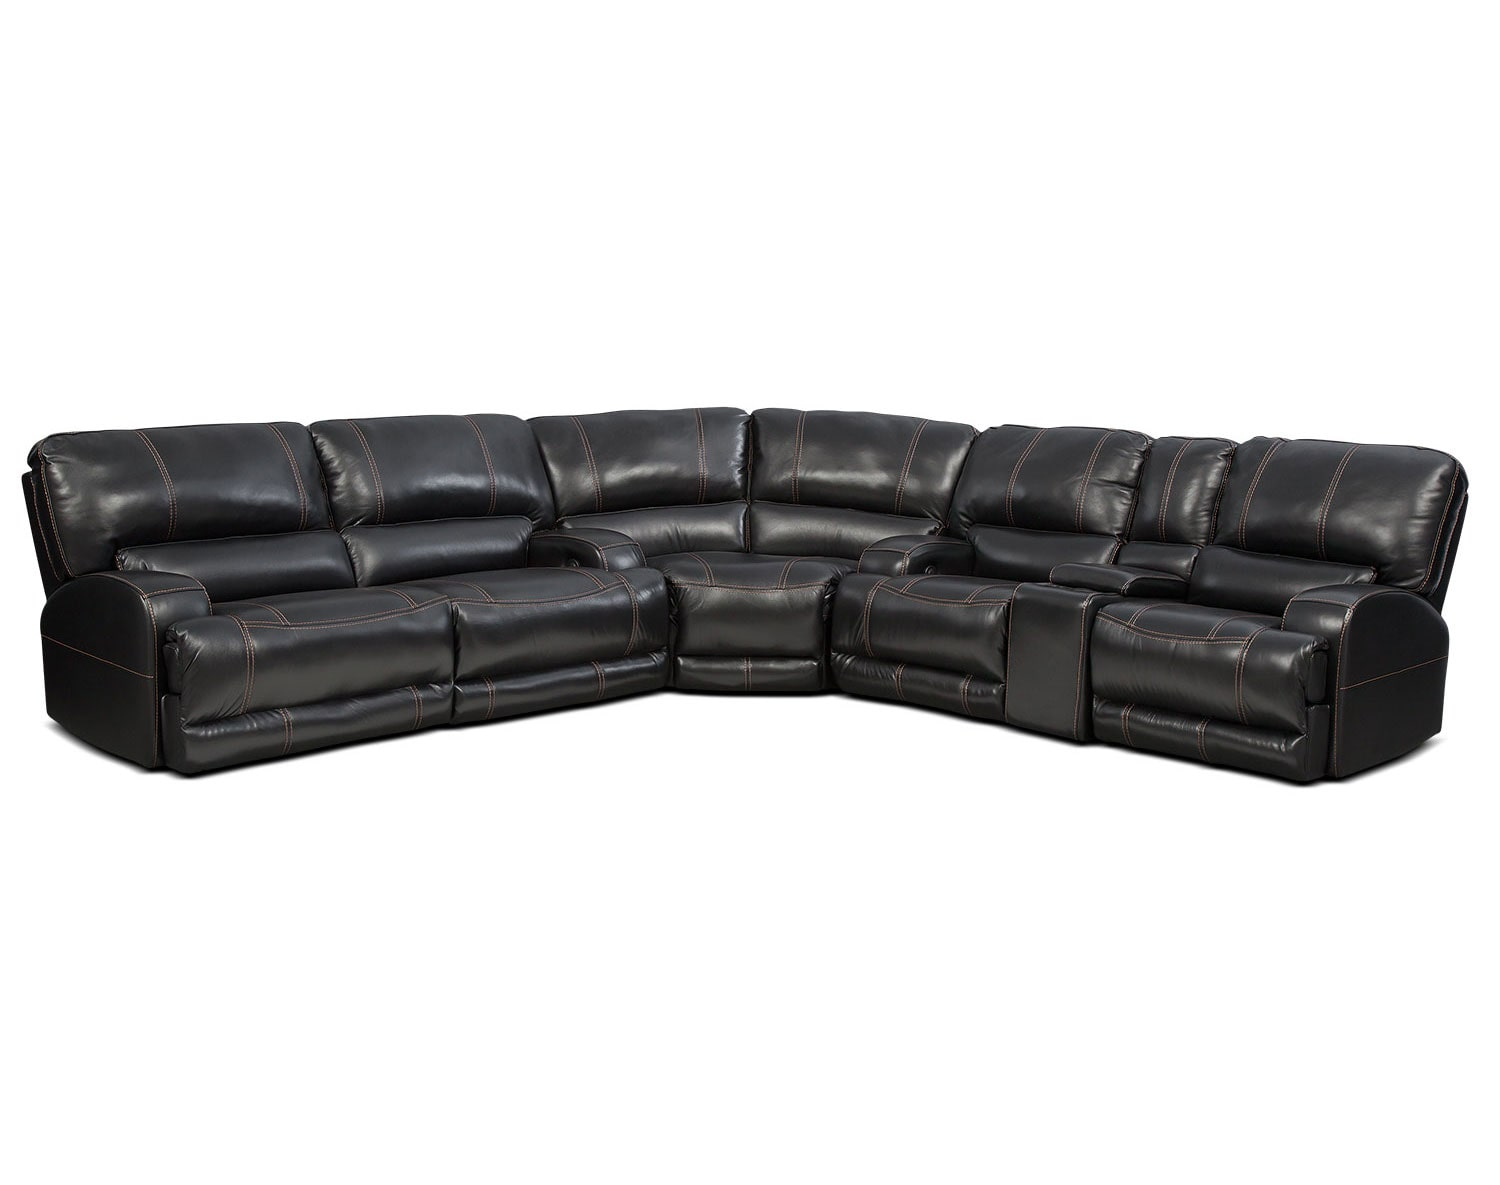 The Barton Sectional Collection - Black